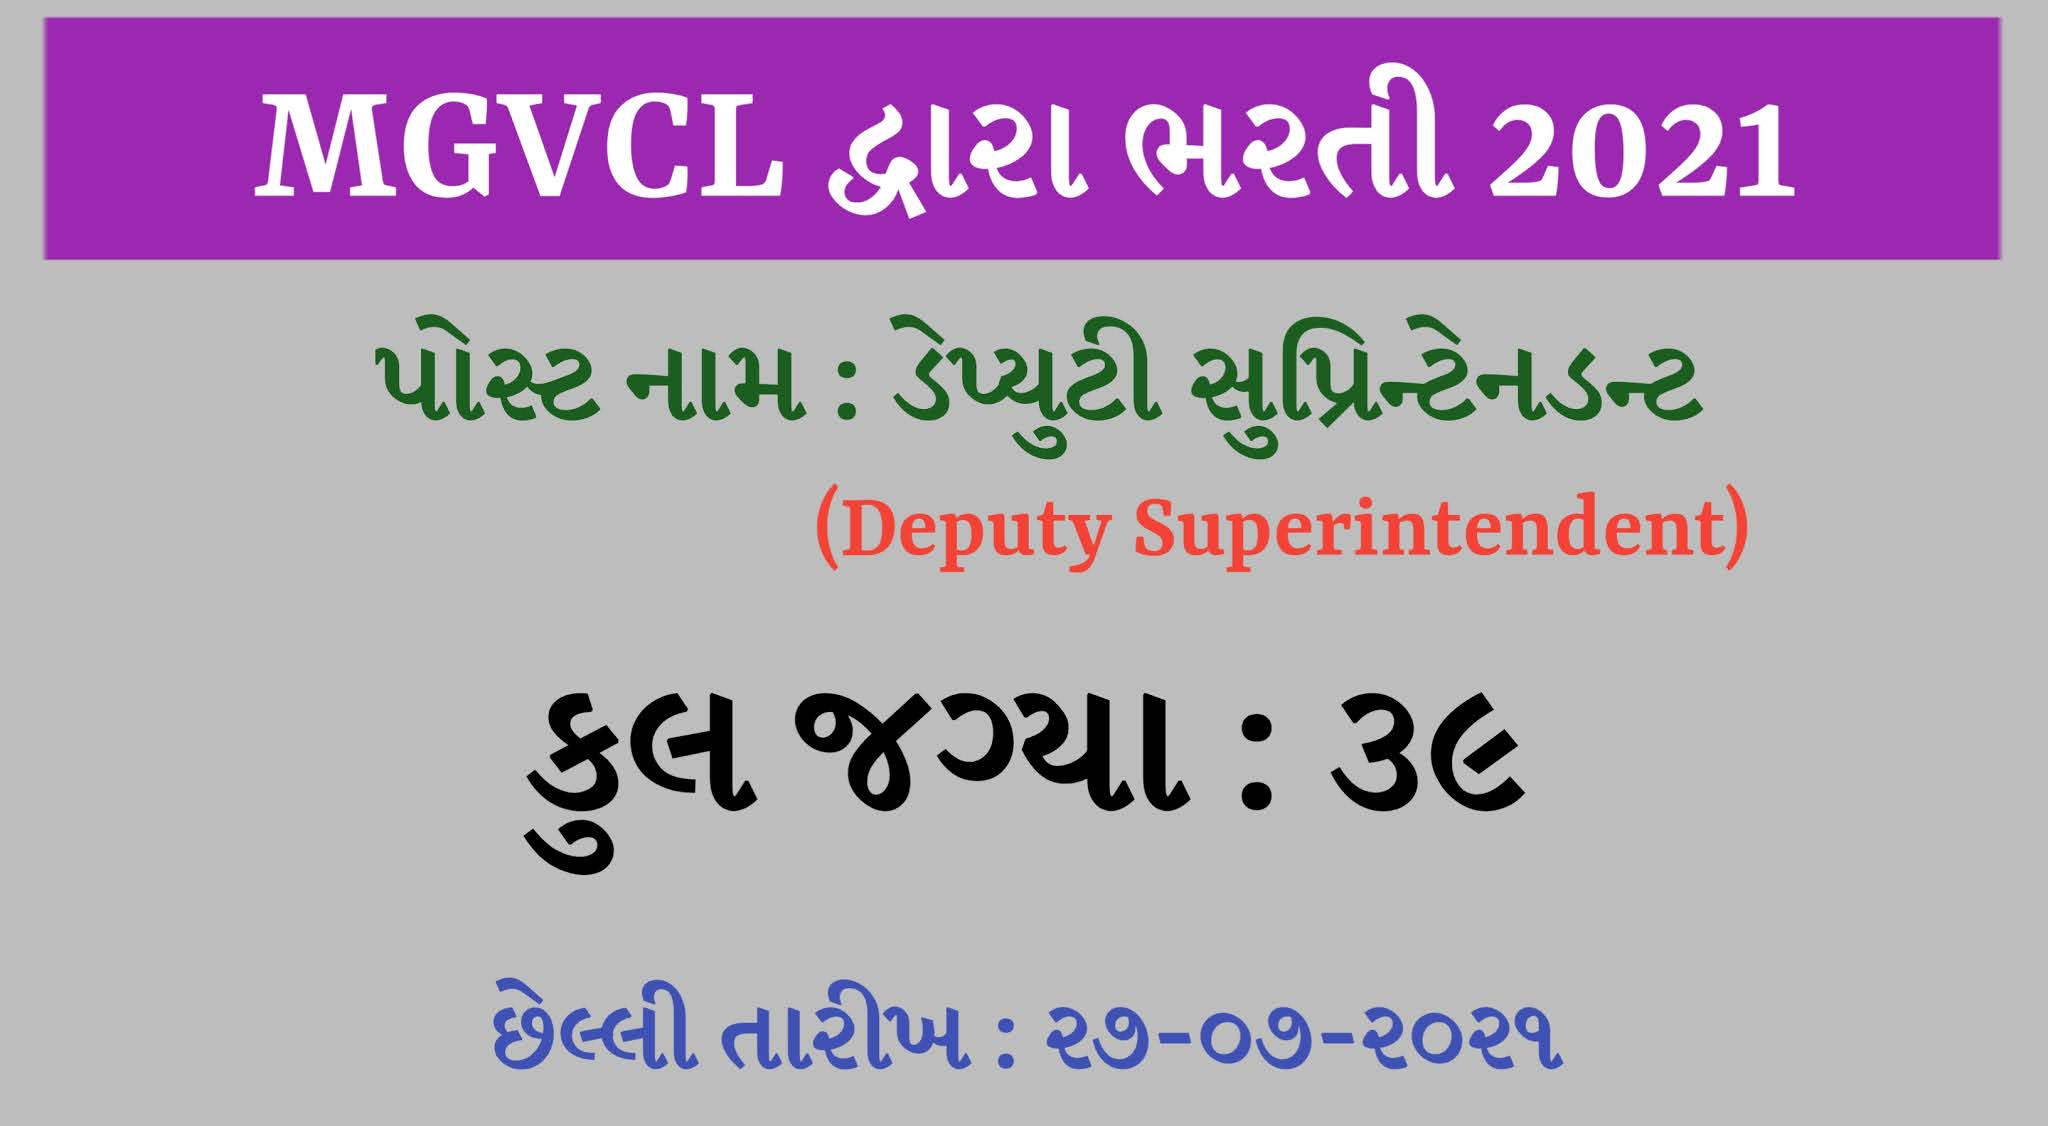 MGVCL Recruitment 2021, MGVCL Deputy Superintendent Recruitment 2021, MGVCL Recruitment Deputy Superintendent Post 2021